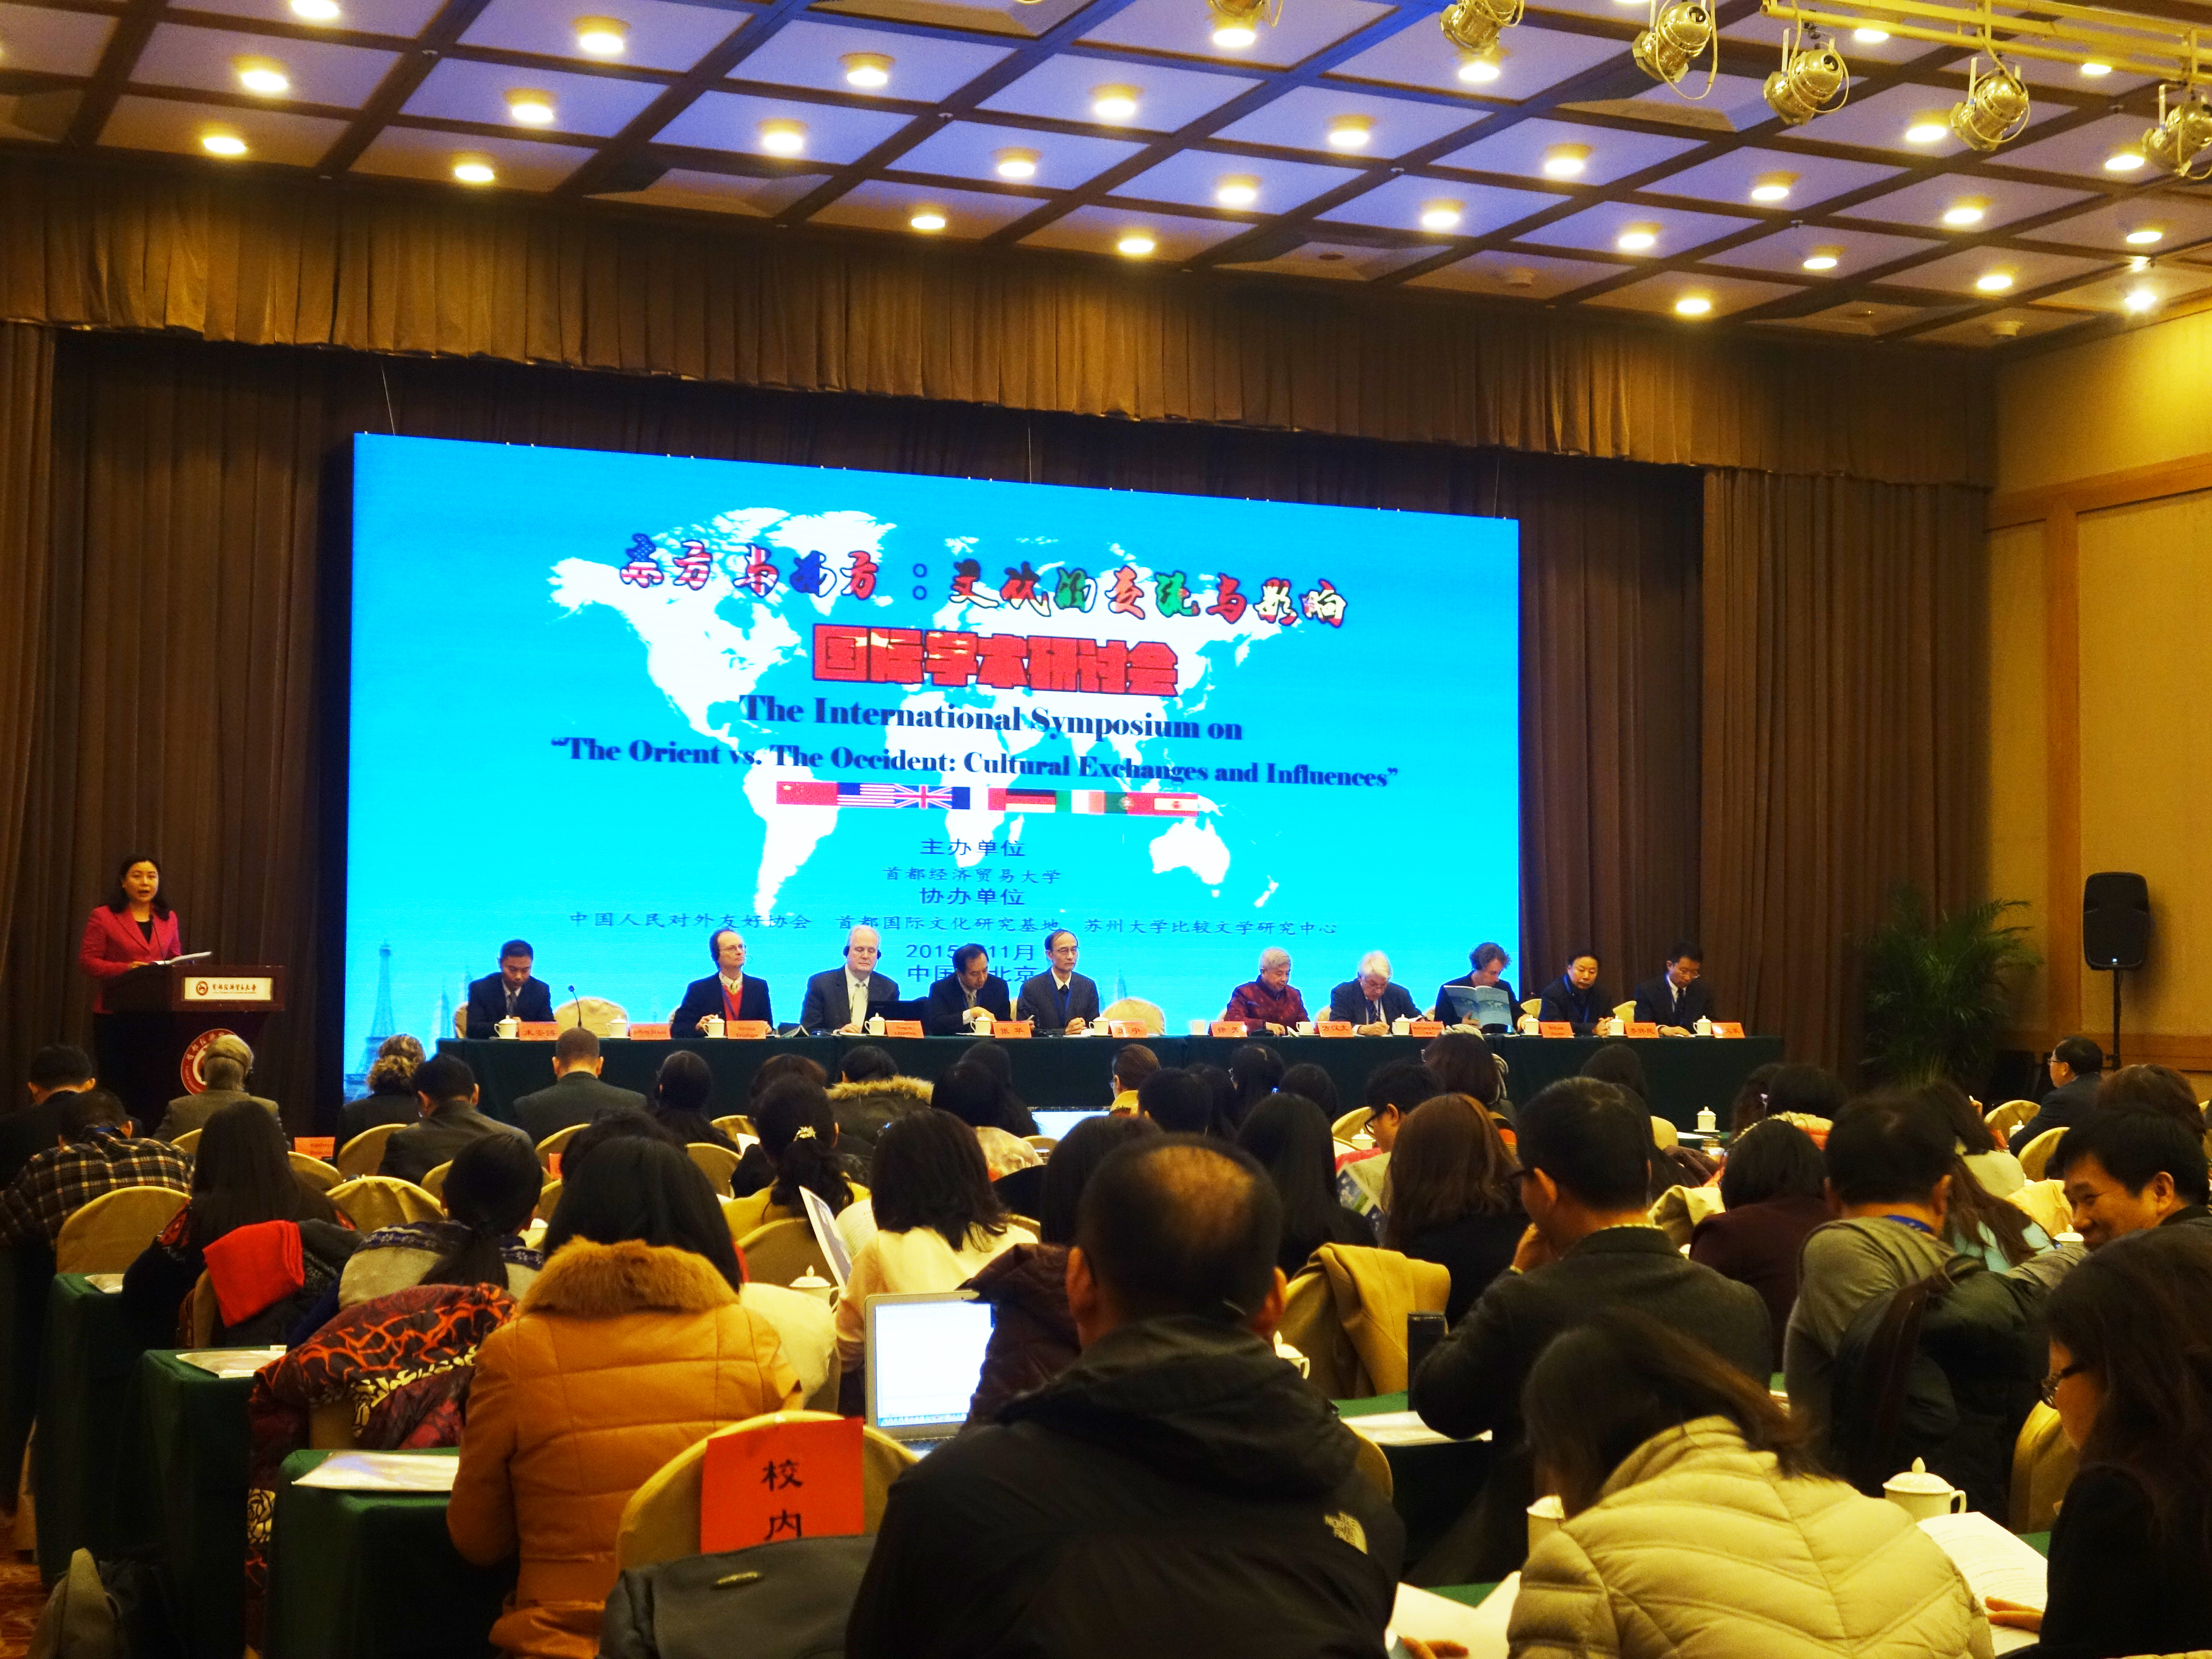 Beijing International Symposium 2016